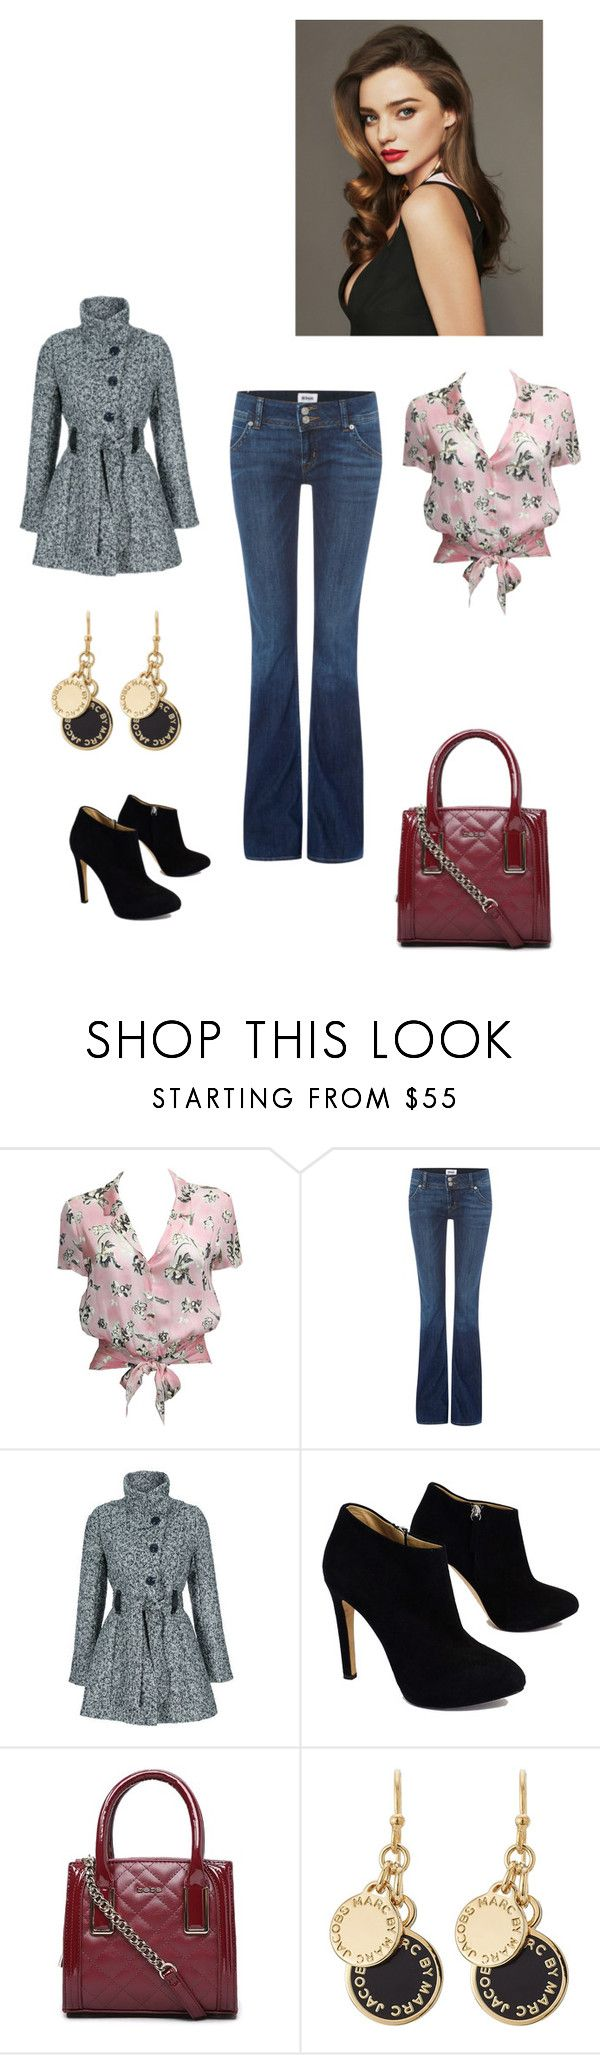 """weiblicher Stil"" by taniaazzini on Polyvore featuring moda, Chanel, Hudson Jeans, Giuseppe Zanotti, Bebe, Kerr® e Marc by Marc Jacobs"